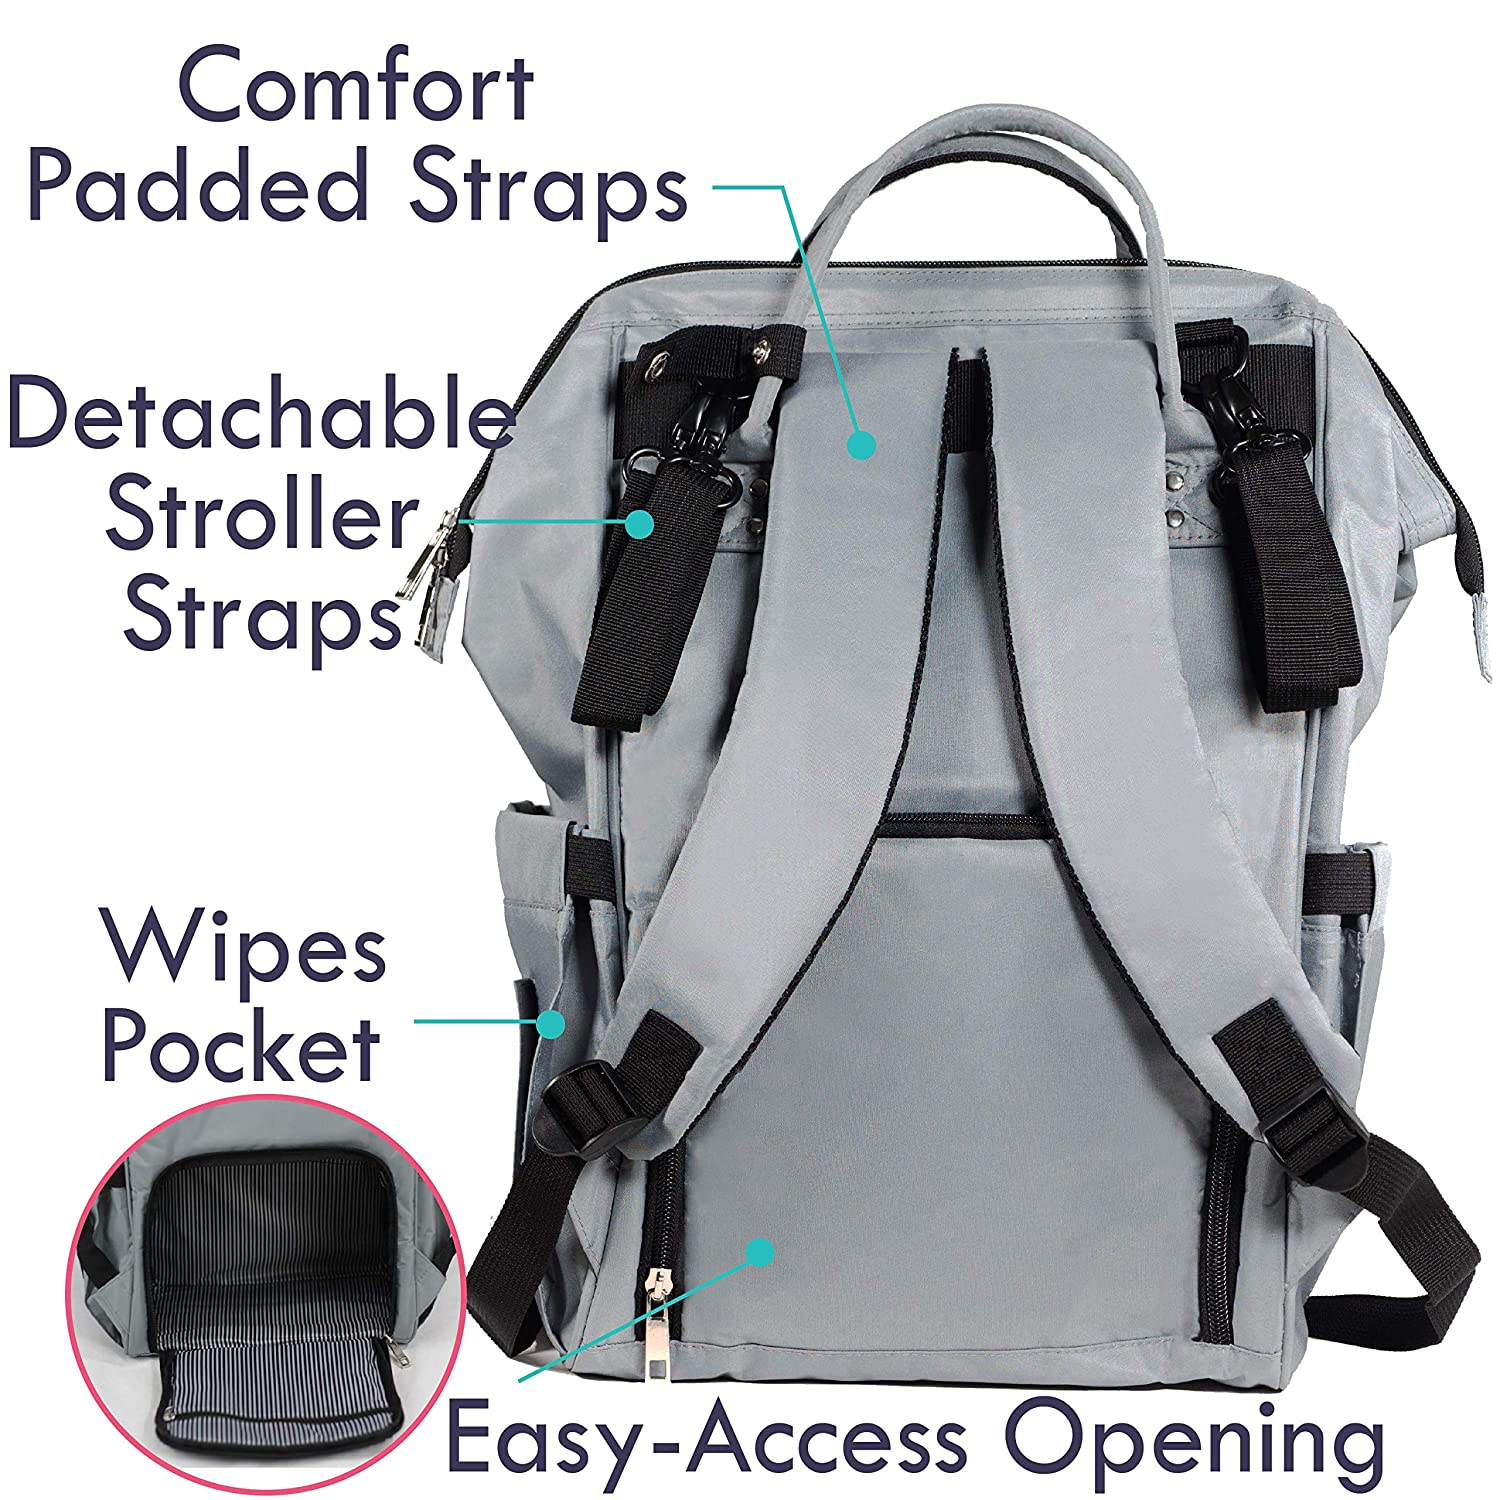 Nappy Bag for Mom Baby Diaper Bags with Changing Pad and Stroller Straps Large Designer Diaper Backpack for Boys and Girls Diaper Bag Backpack by Zohzo Waterproof /& Insulated for Travel